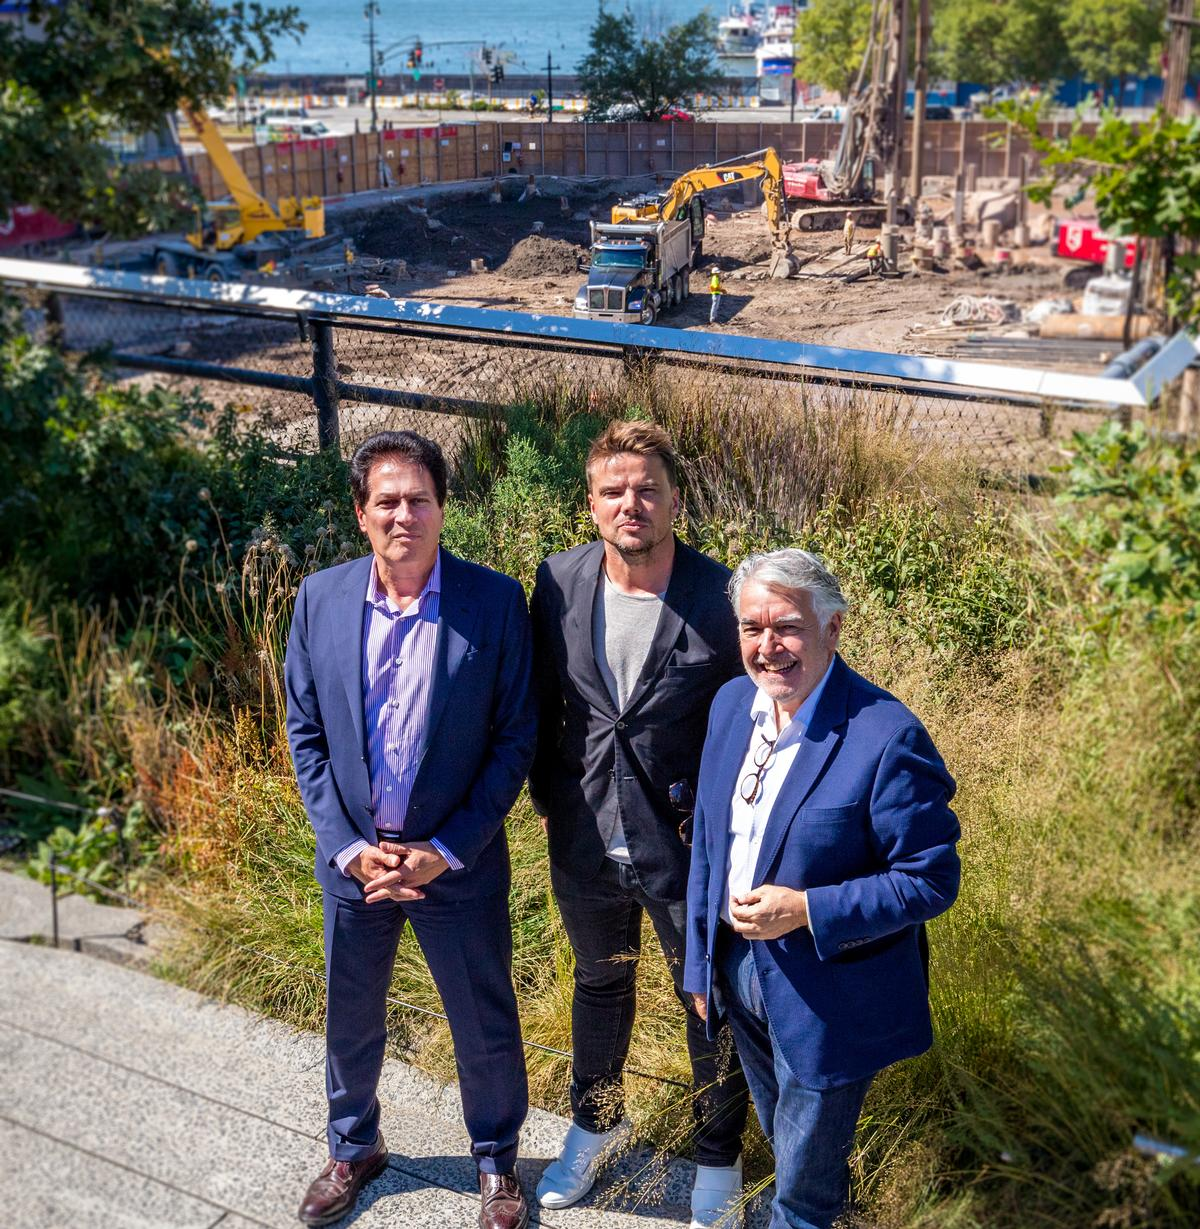 From left to right: Ziel Feldman, chair and founder of HFZ Capital Group; Bjarke Ingels, founding partner of BIG; Neil Jacobs, CEO of Six Senses Hotels Resorts Spas, at the site of Six Senses New York